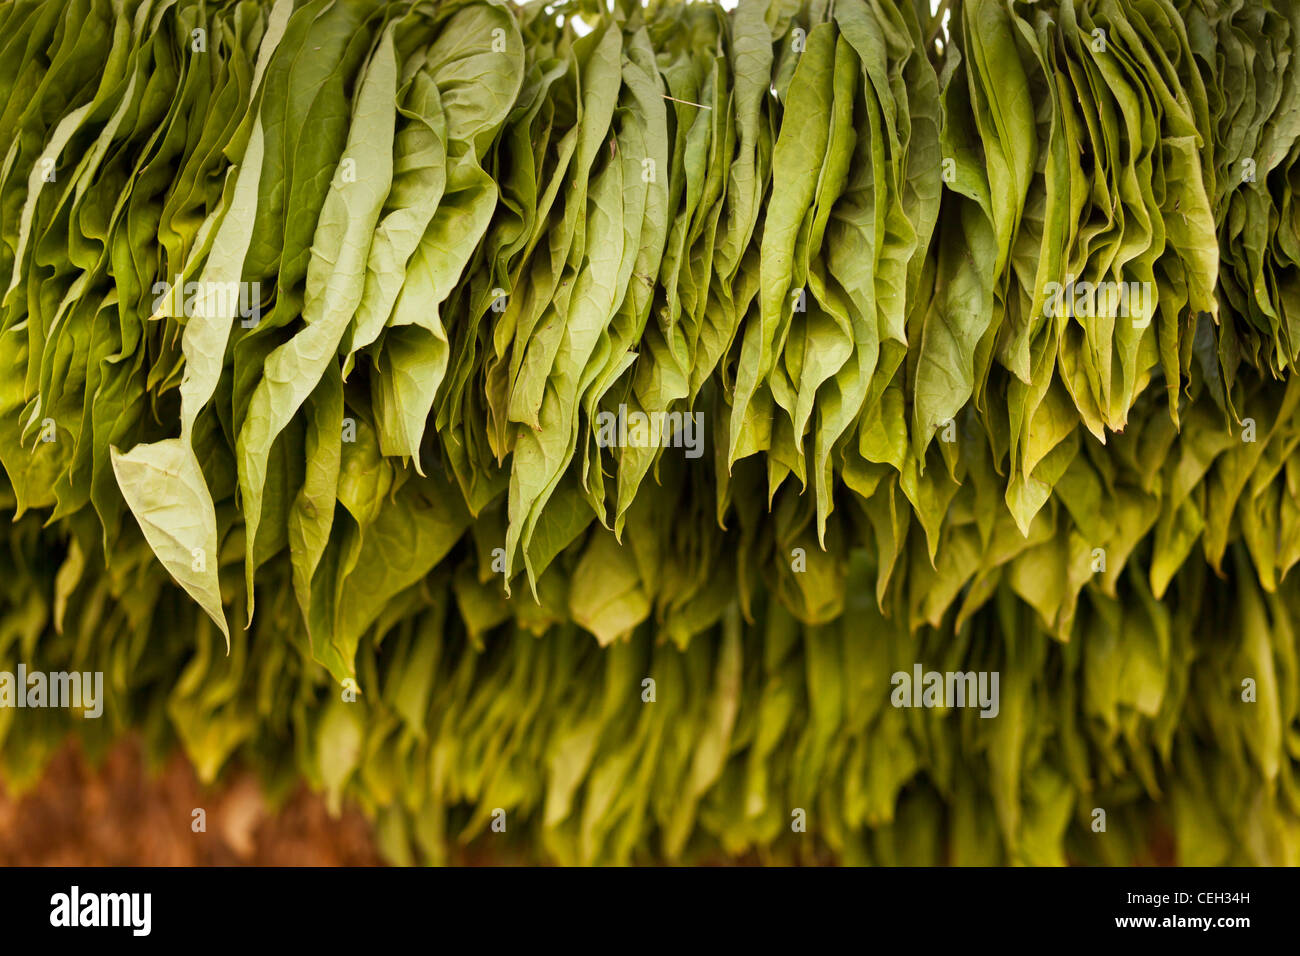 `green tobacco leaves,hanged up to dry Nicotiana sp. - Stock Image